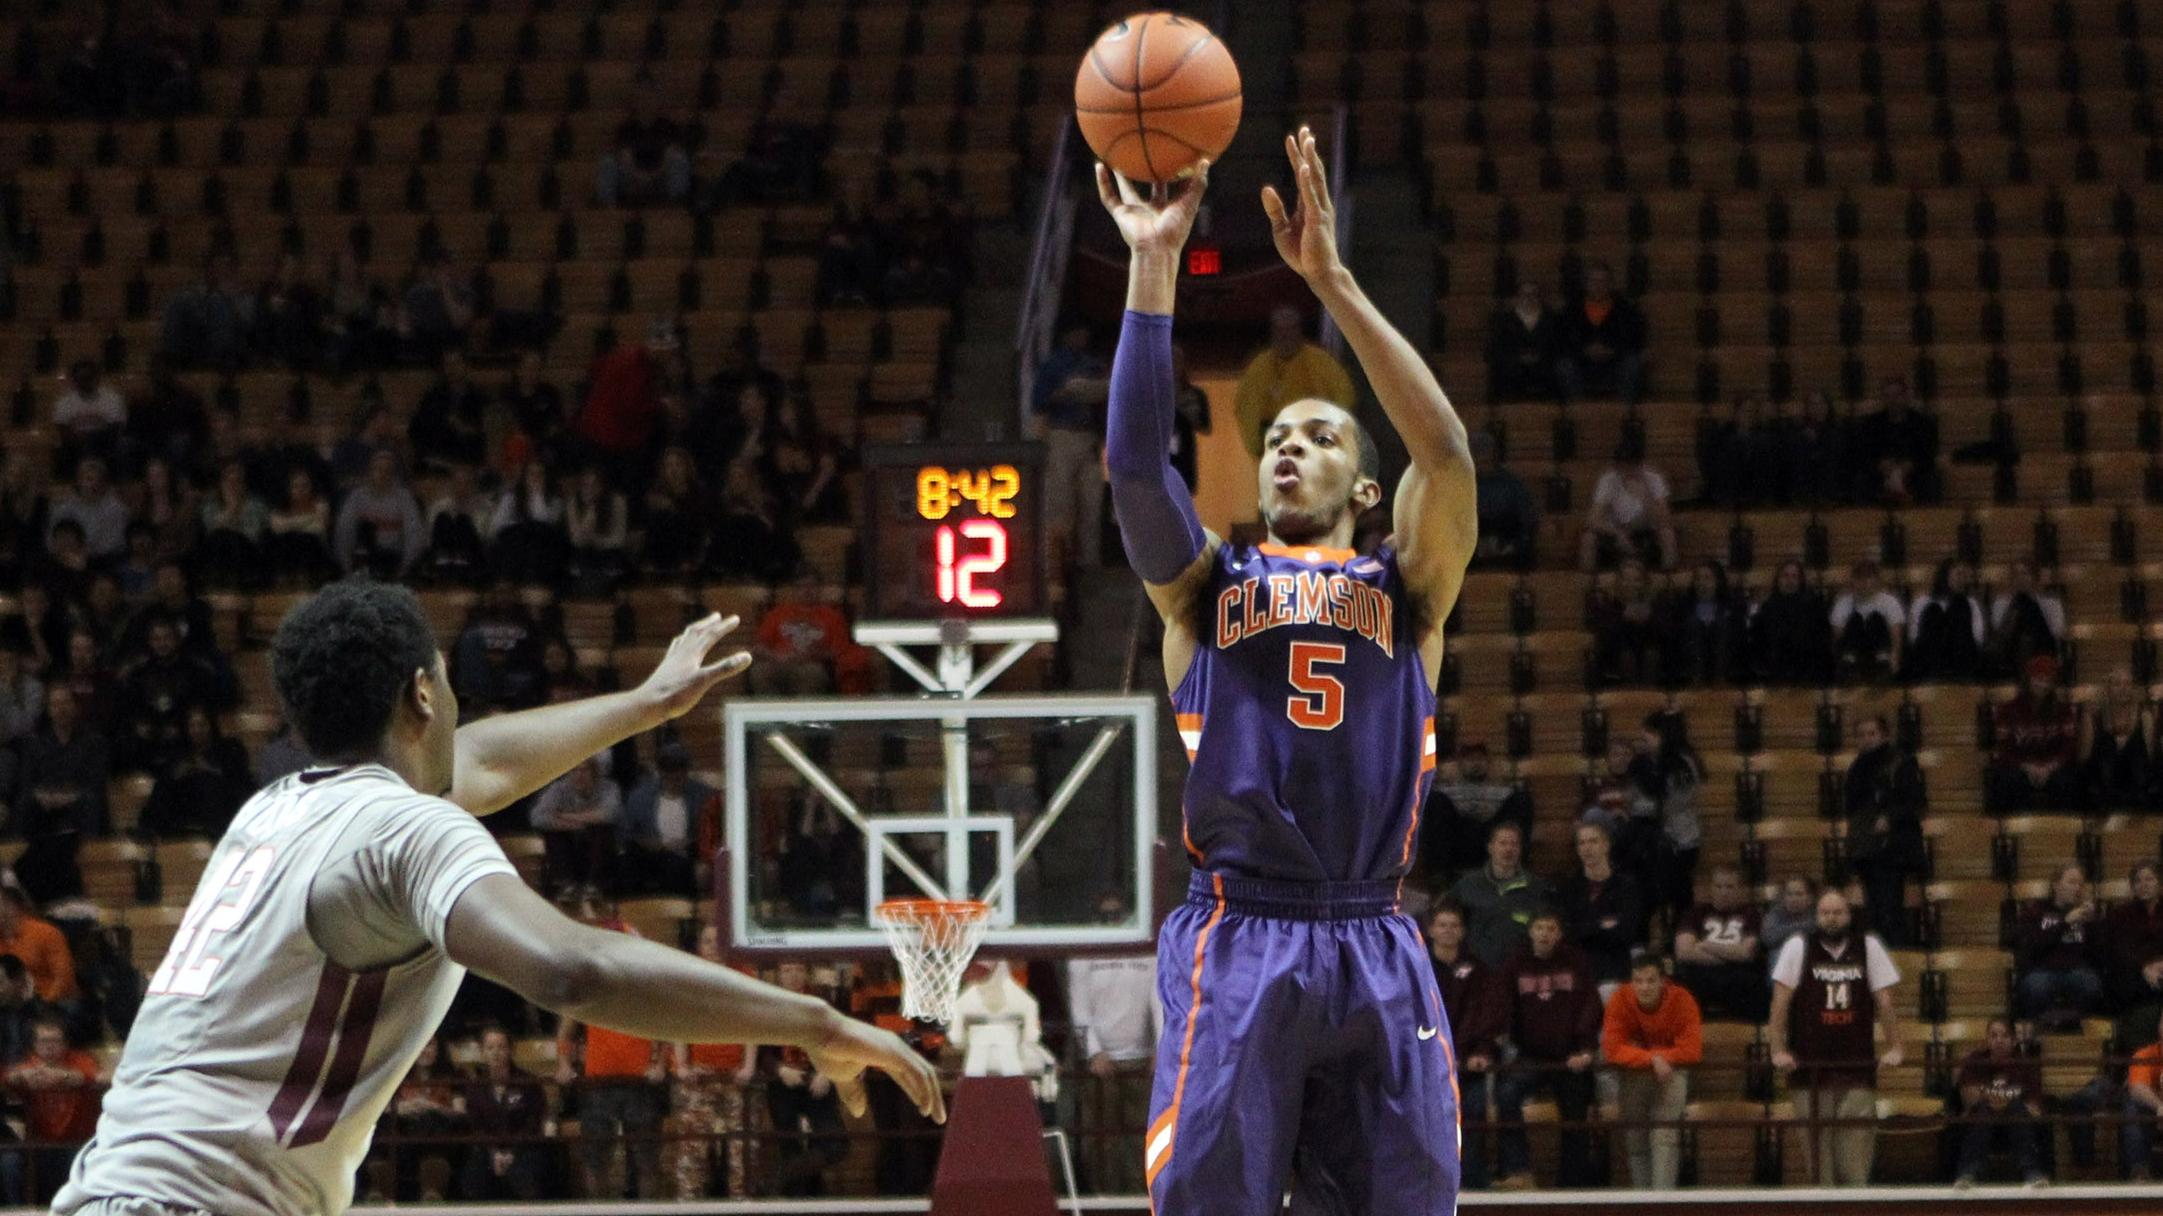 975142c3d066 Tigers Travel to Tallahassee to Face Florida State Saturday ...